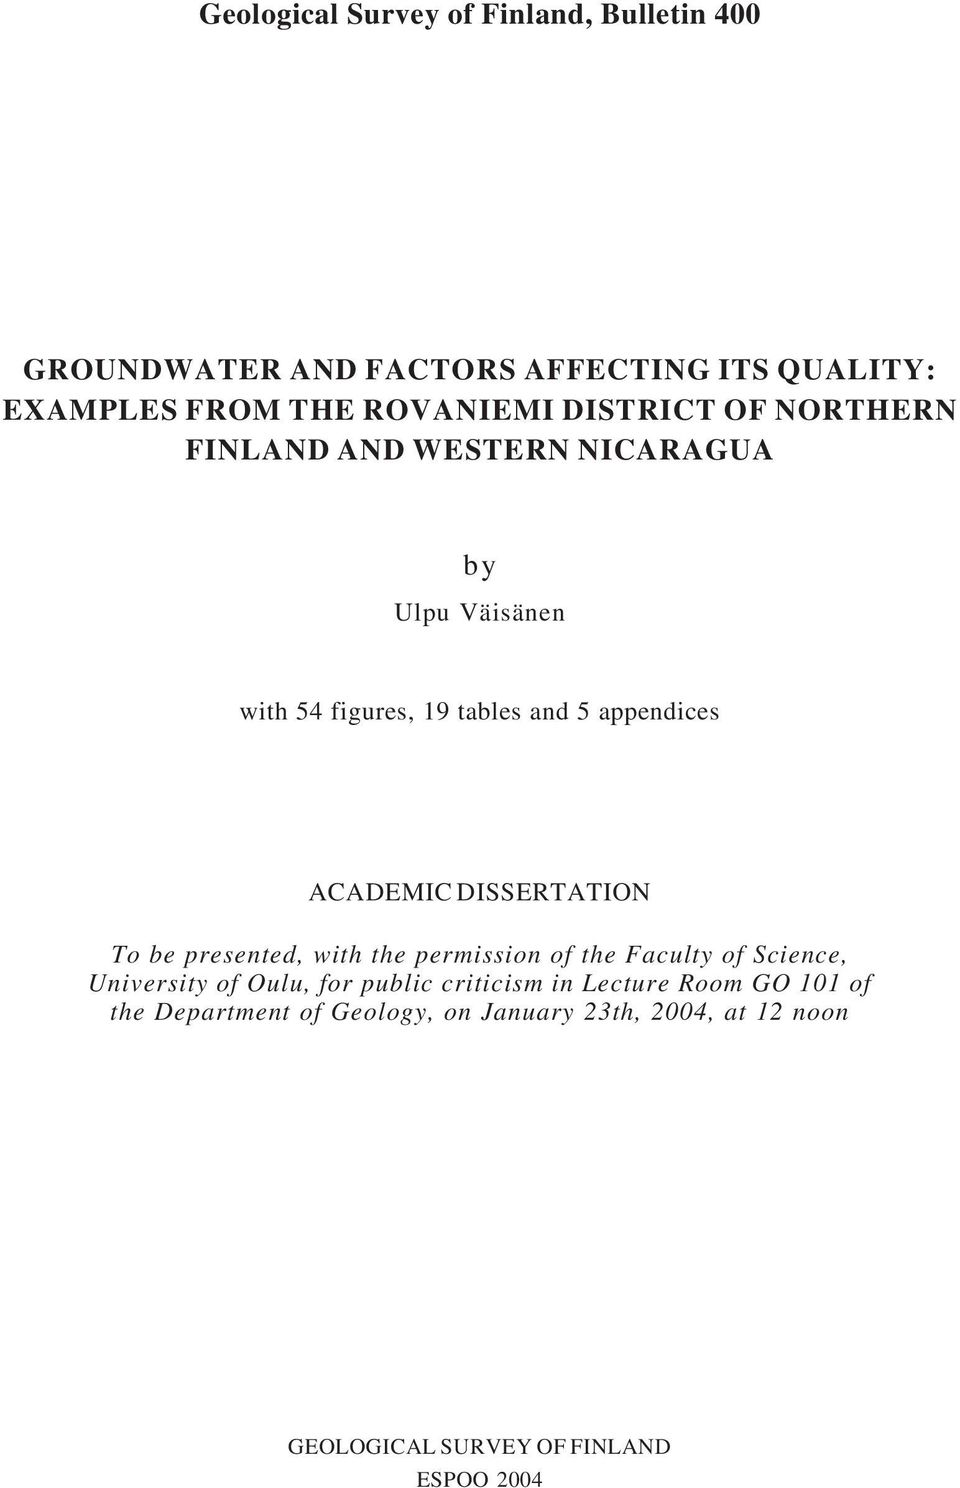 presented, with the permission of the Faculty of Science, University of Oulu, of Oulu, for for public public criticism in